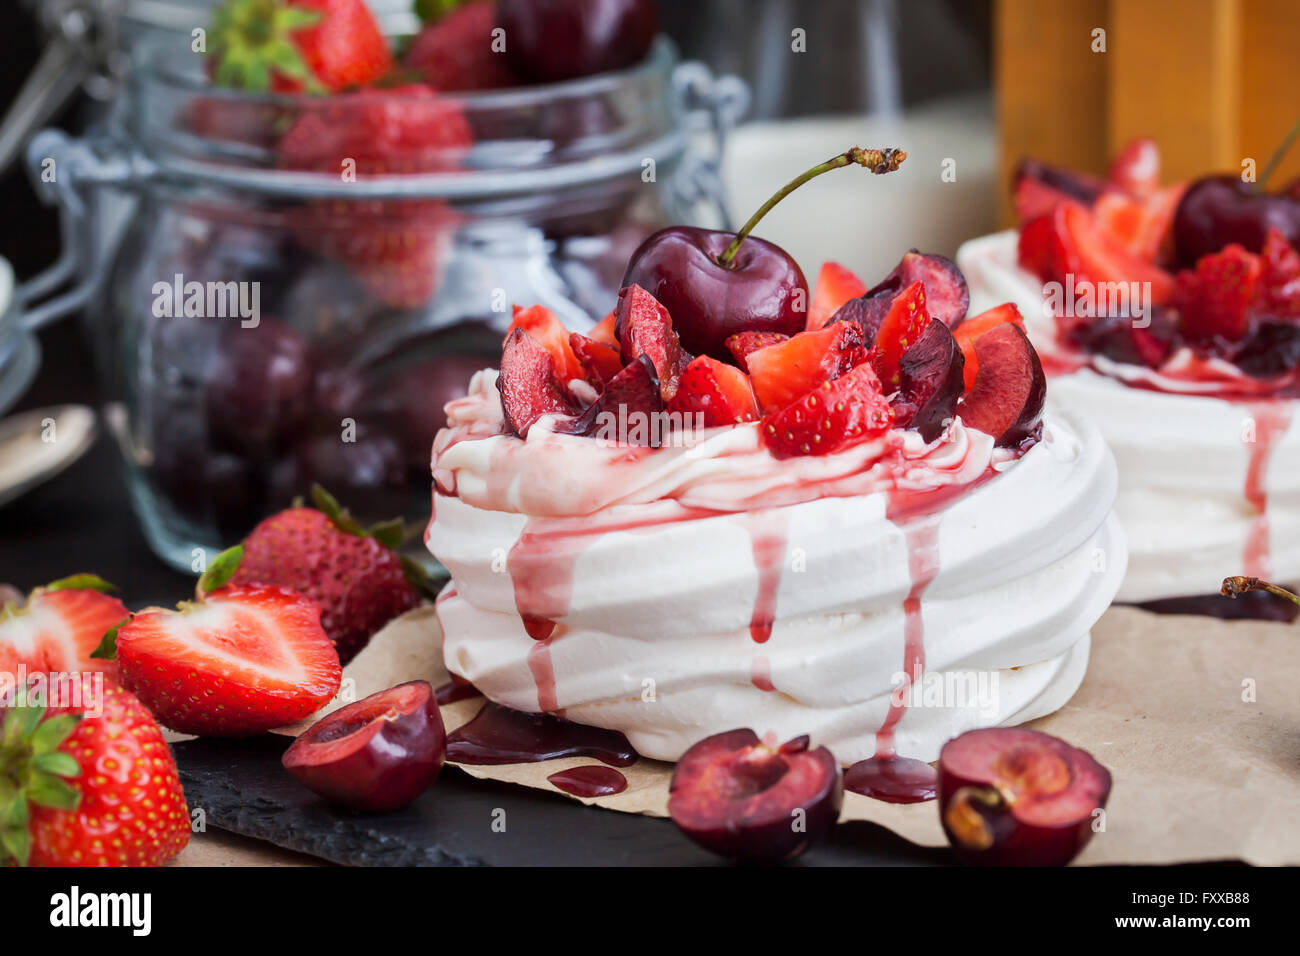 Portion of mini Pavlova meringue cake decorated with fresh strawberry and cherry - Stock Image